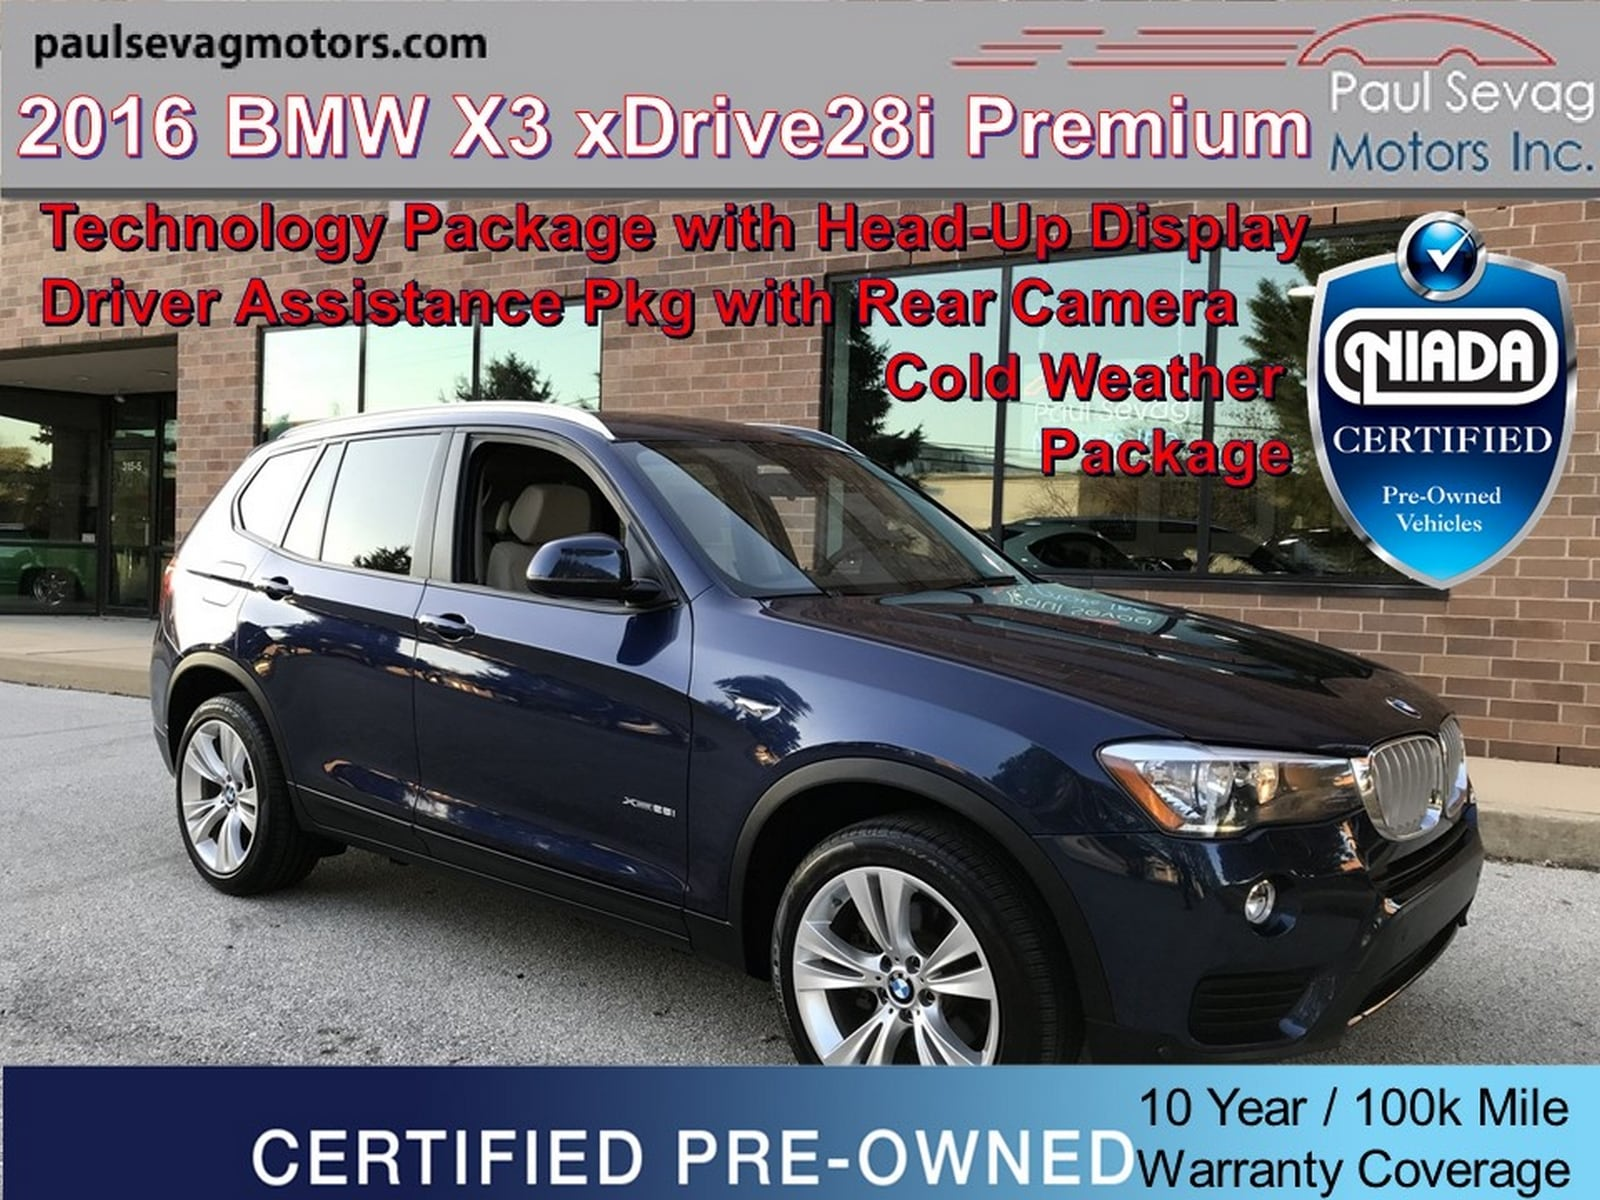 2016 BMW X3 xDrive28i Technology/Driver Assistance/Cold Weather Pkgs